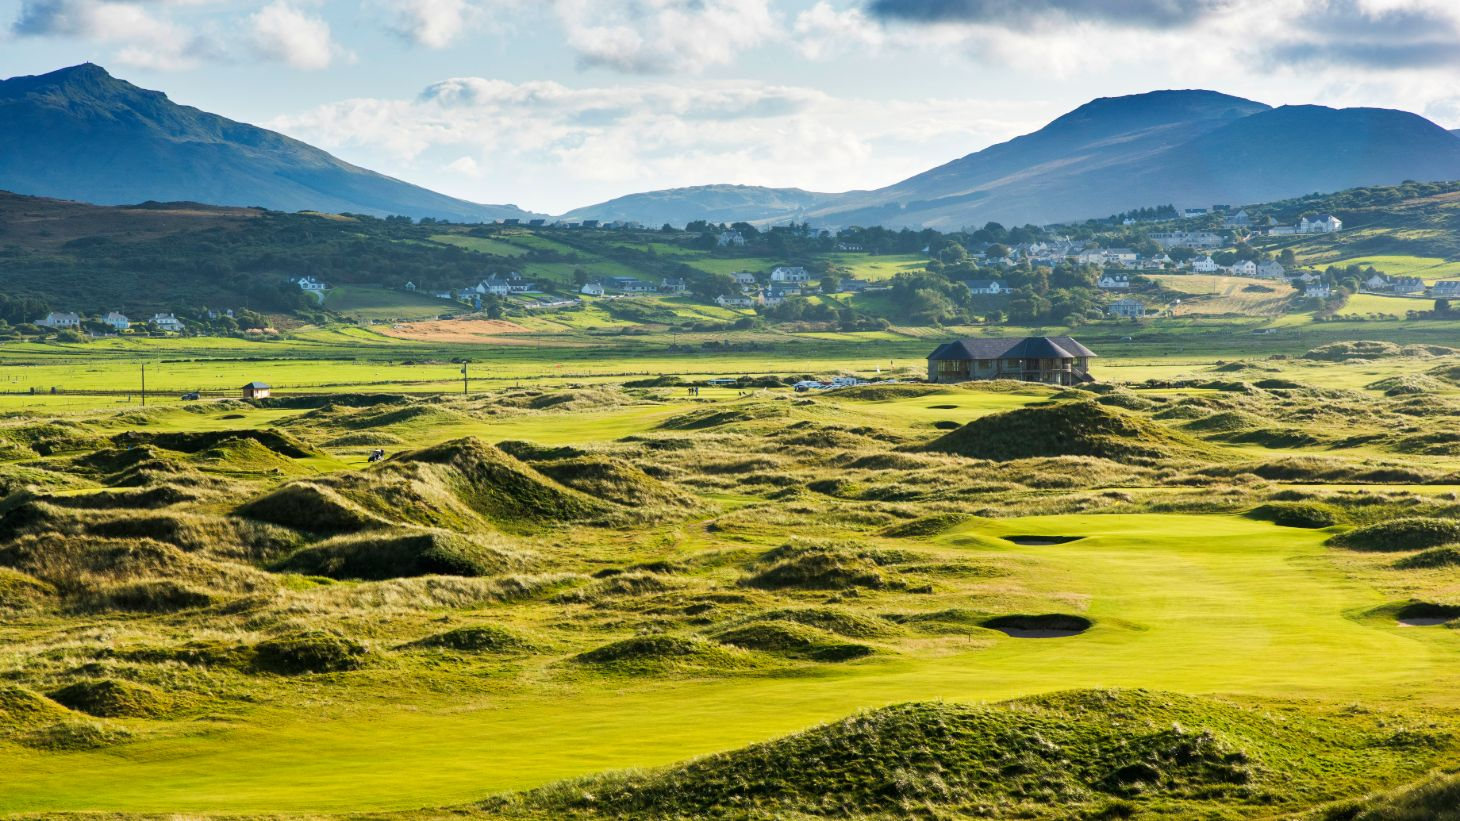 Chip in for birdie atBallyliffinGolf Club in County Donegal.